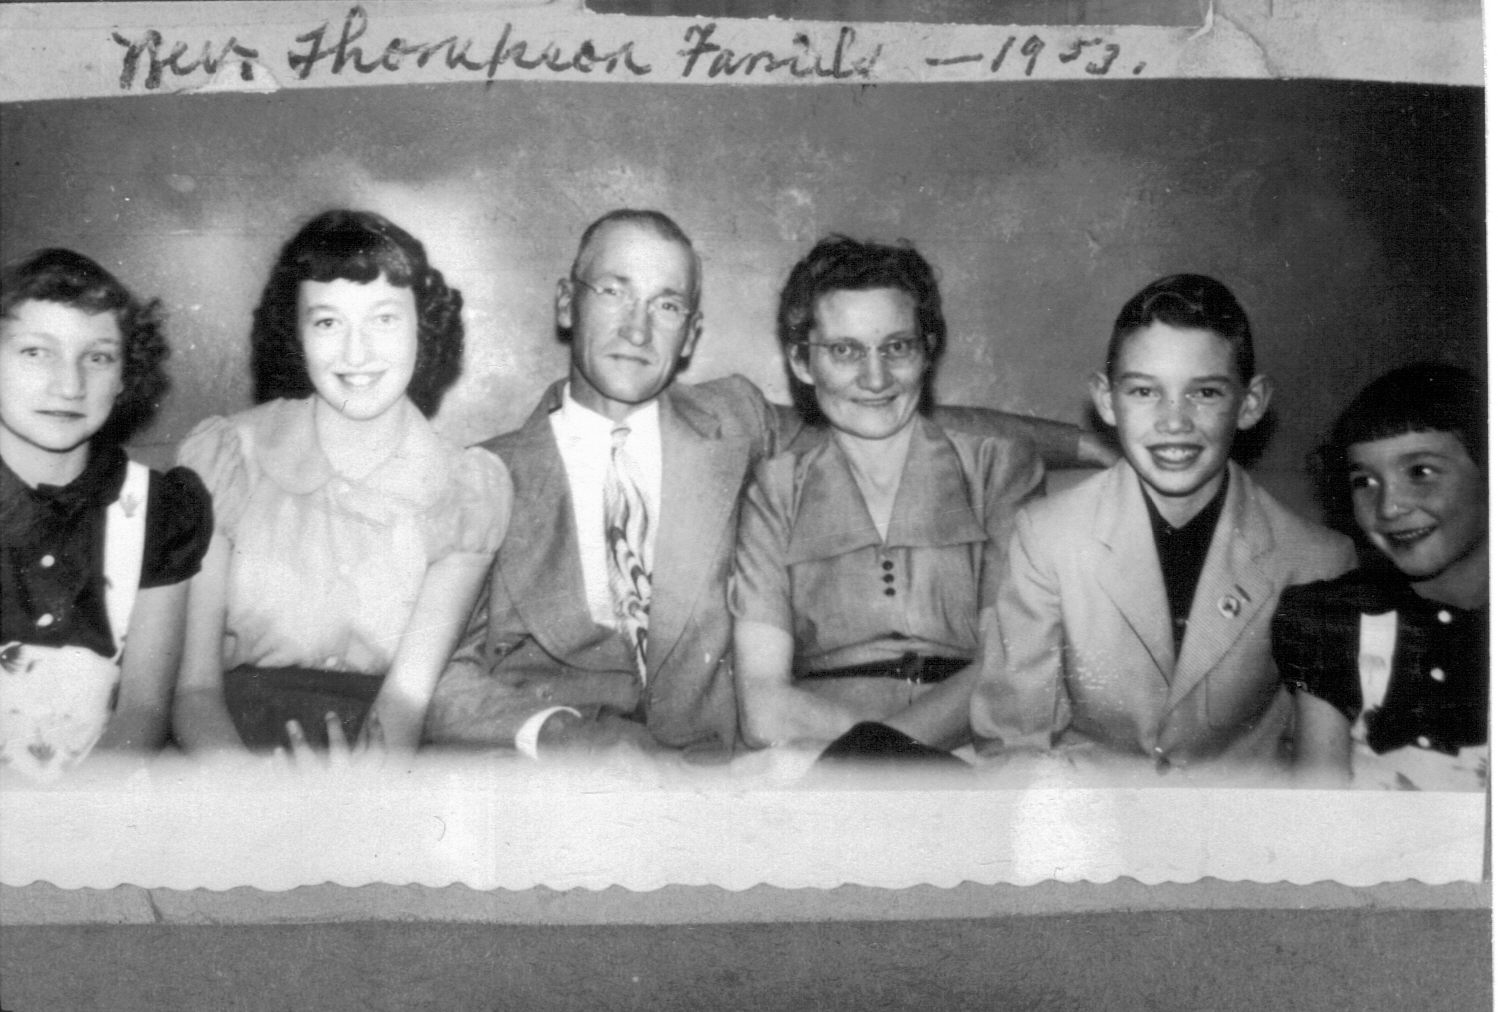 The Thompson Family in 1953